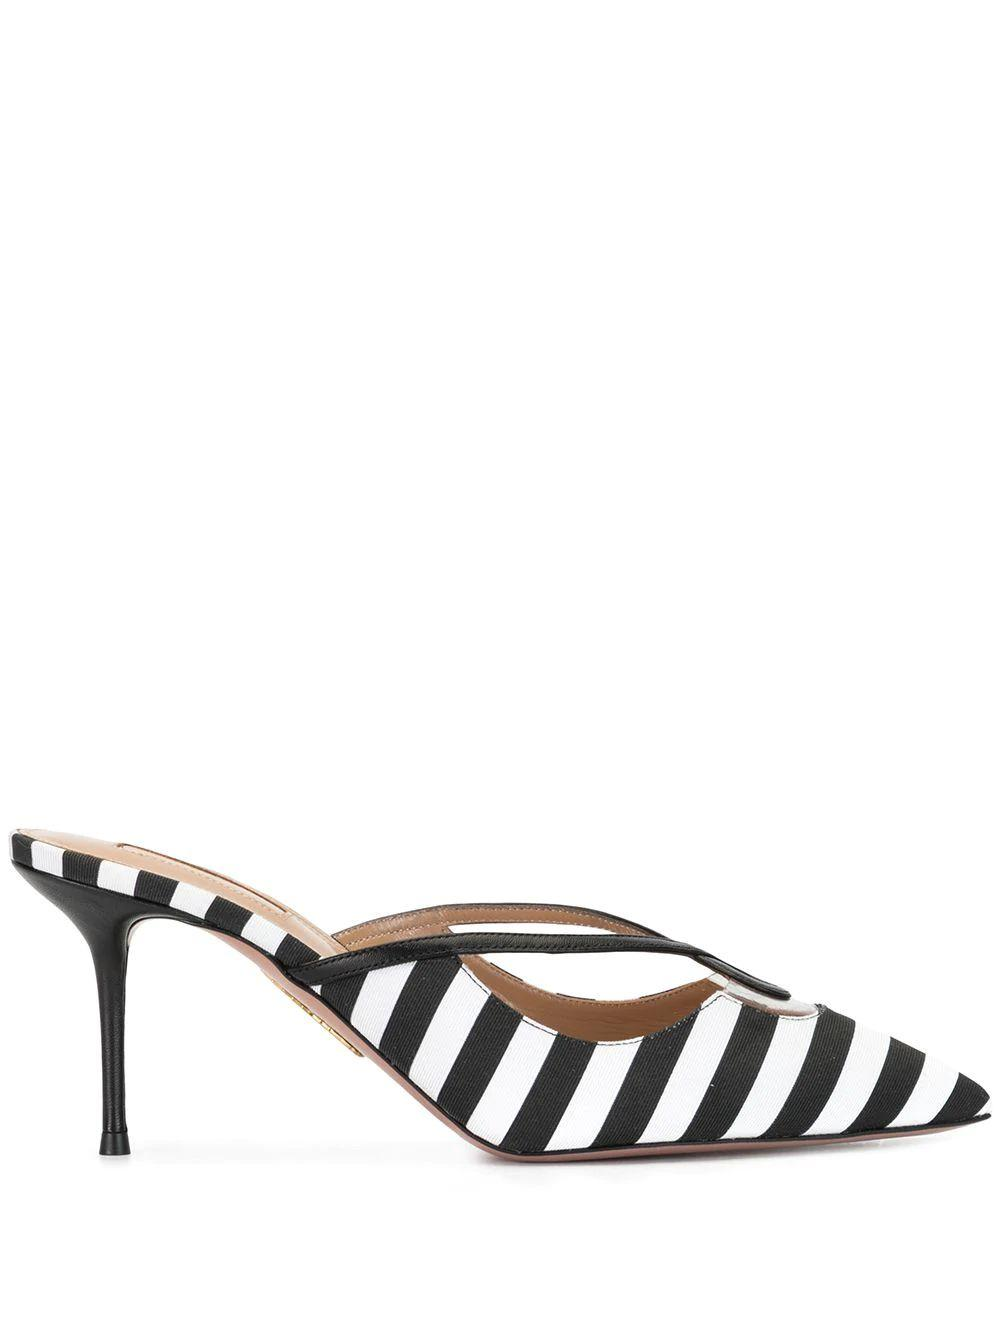 Villa 75mm Striped Mule